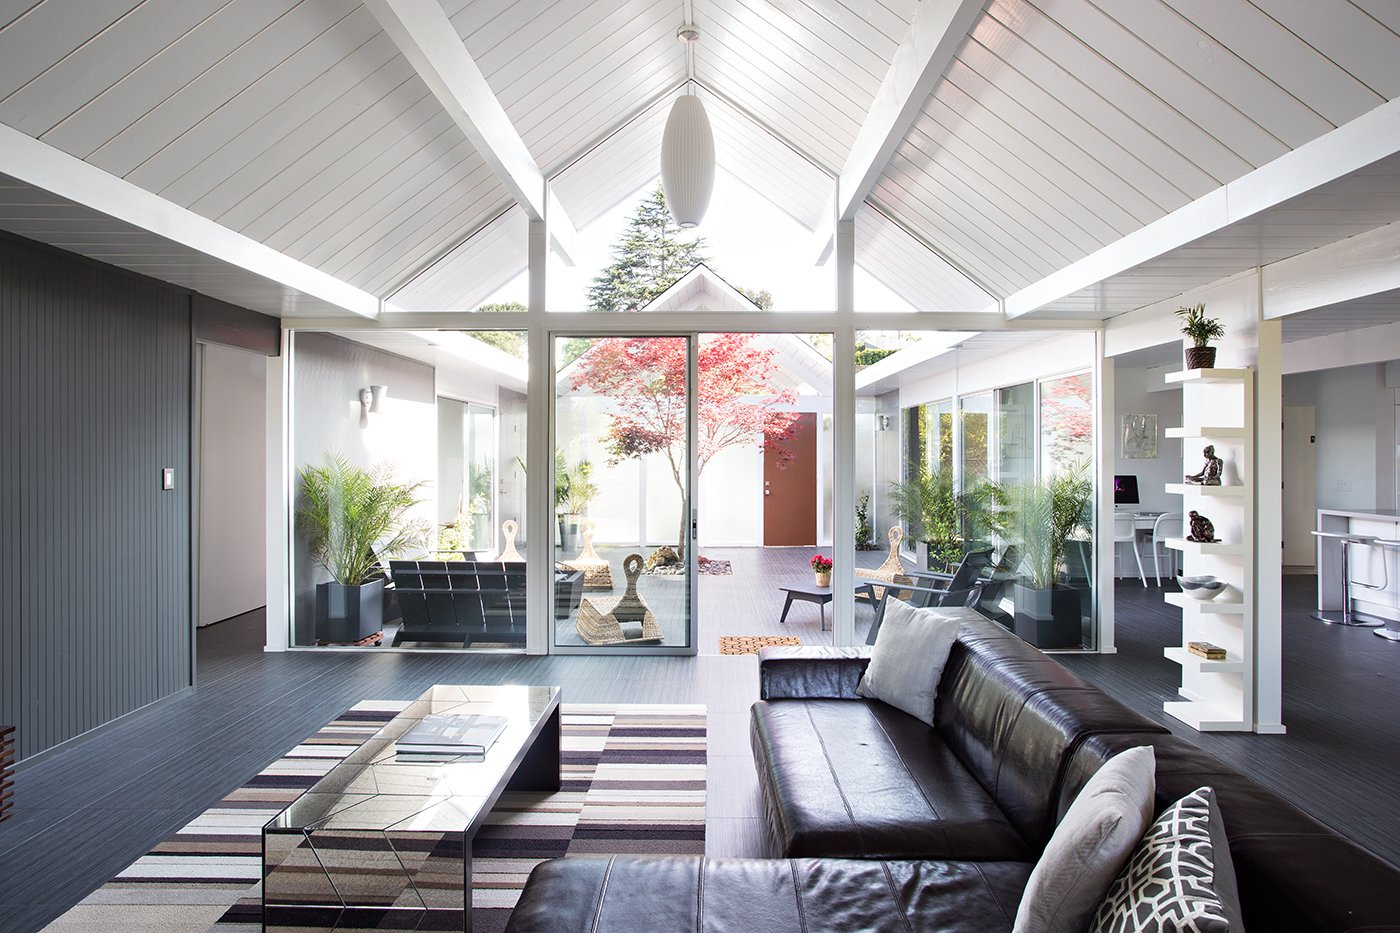 What Are Eichler Homes and Why Do People Love Them? - Dwell